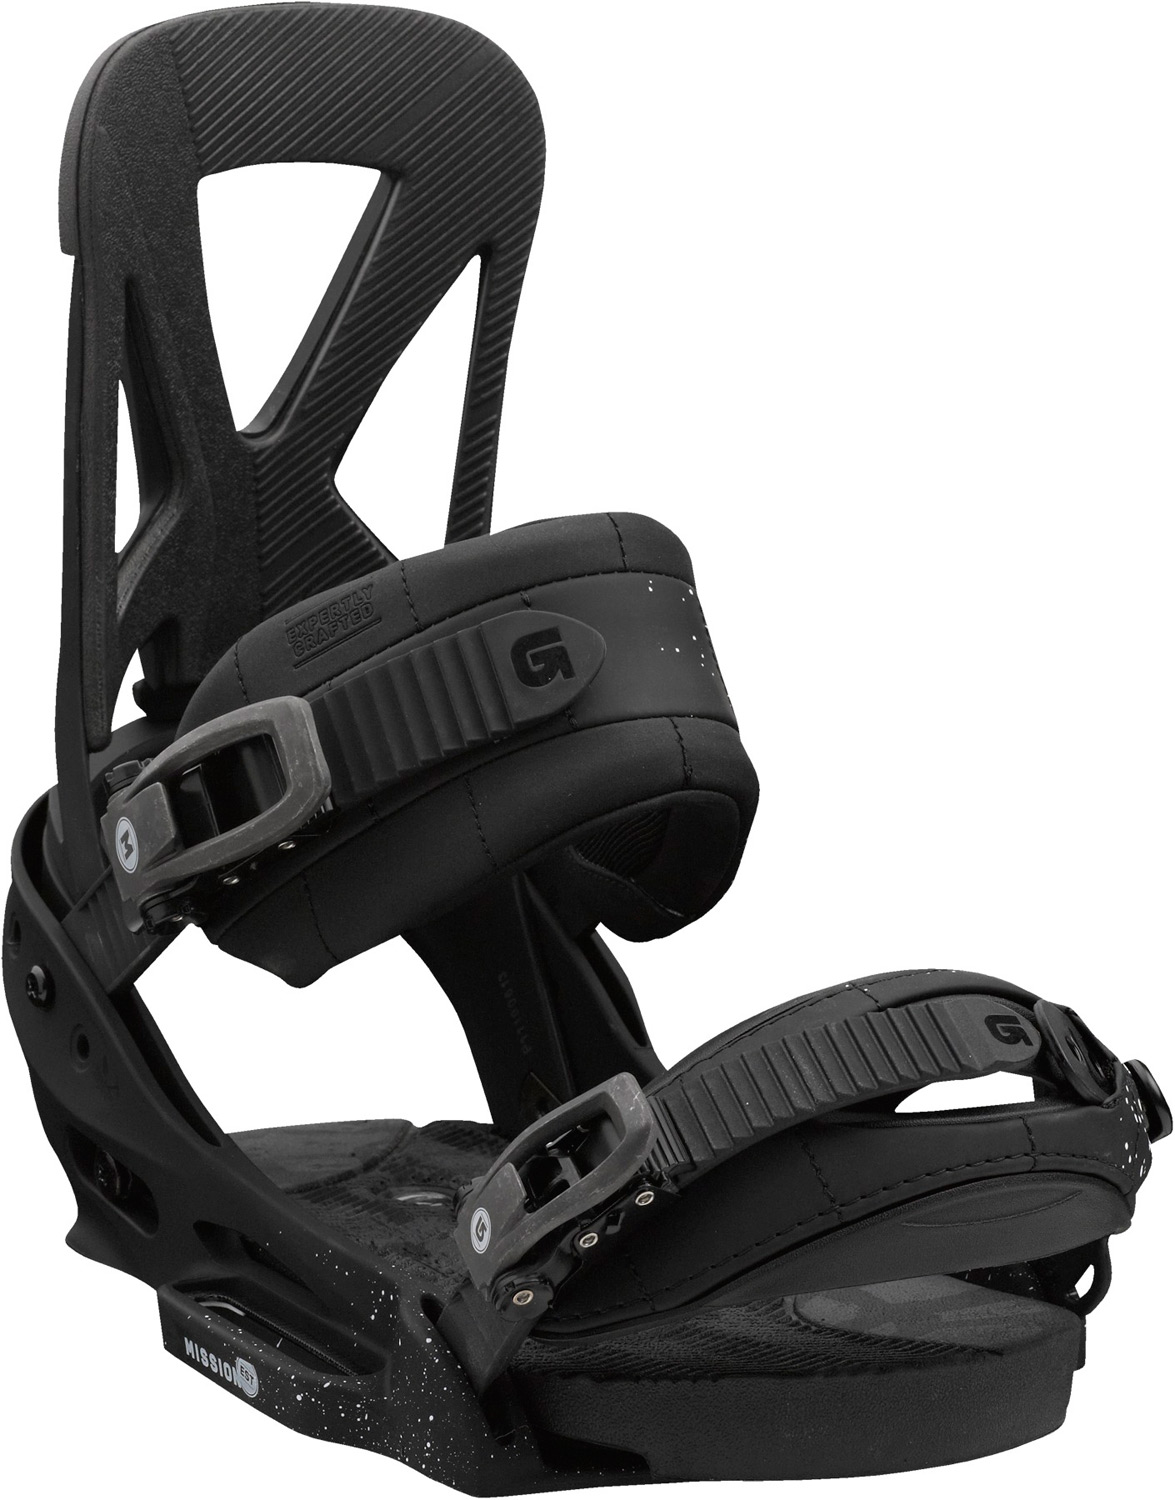 Snowboard A million pairs later.Key Features of the Burton Mission EST Snowboard Bindings: Response: 6 Baseplate: Single-Component 30% Short-Glass/Nylon Composite EST Hi-Back: NEW Single-Component Canted Living Hinge Zero-Lean Hi-Back with DialFLAD Straps: Superstrap and Gettagrip Capstrap Buckles: Smooth Glide Buckles Cushioning: Removable SensoryBED Cushioning System Rides Exclusively with Burton Boards Featuring The Channel Features Re-Ground Materials in Hi-Back to Reduce Waste - $153.95